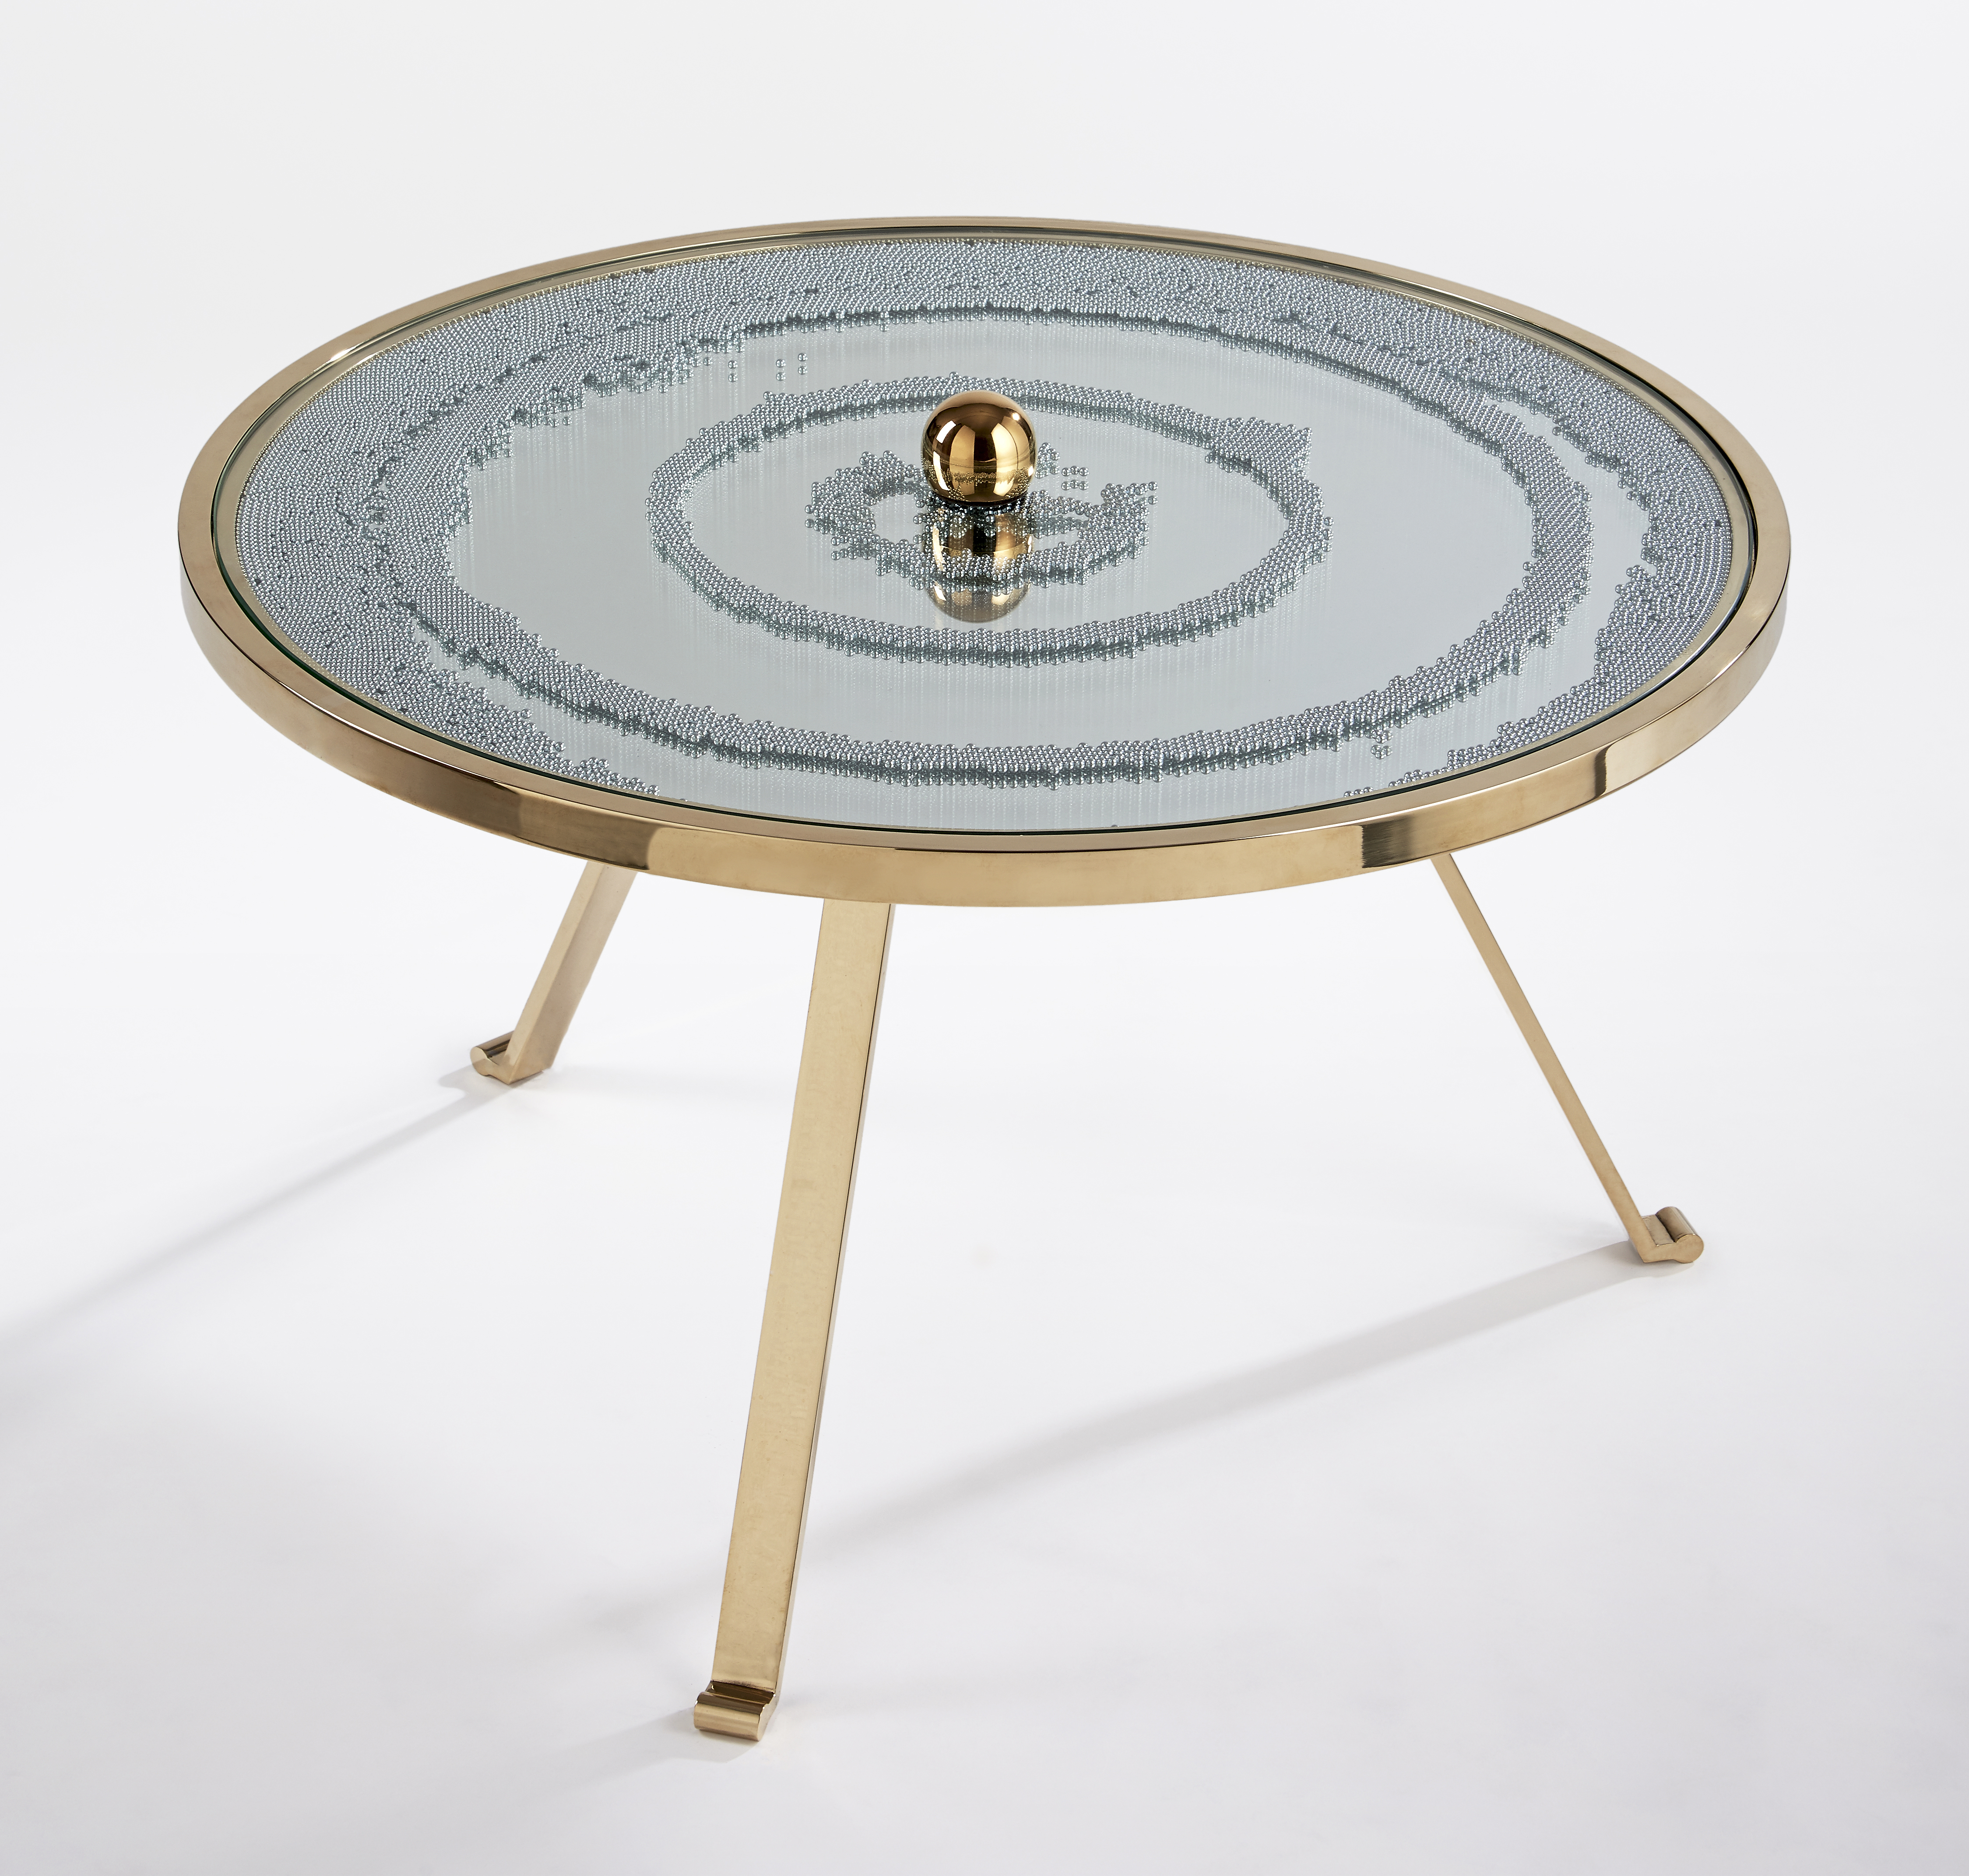 Table Frissons tornade 01